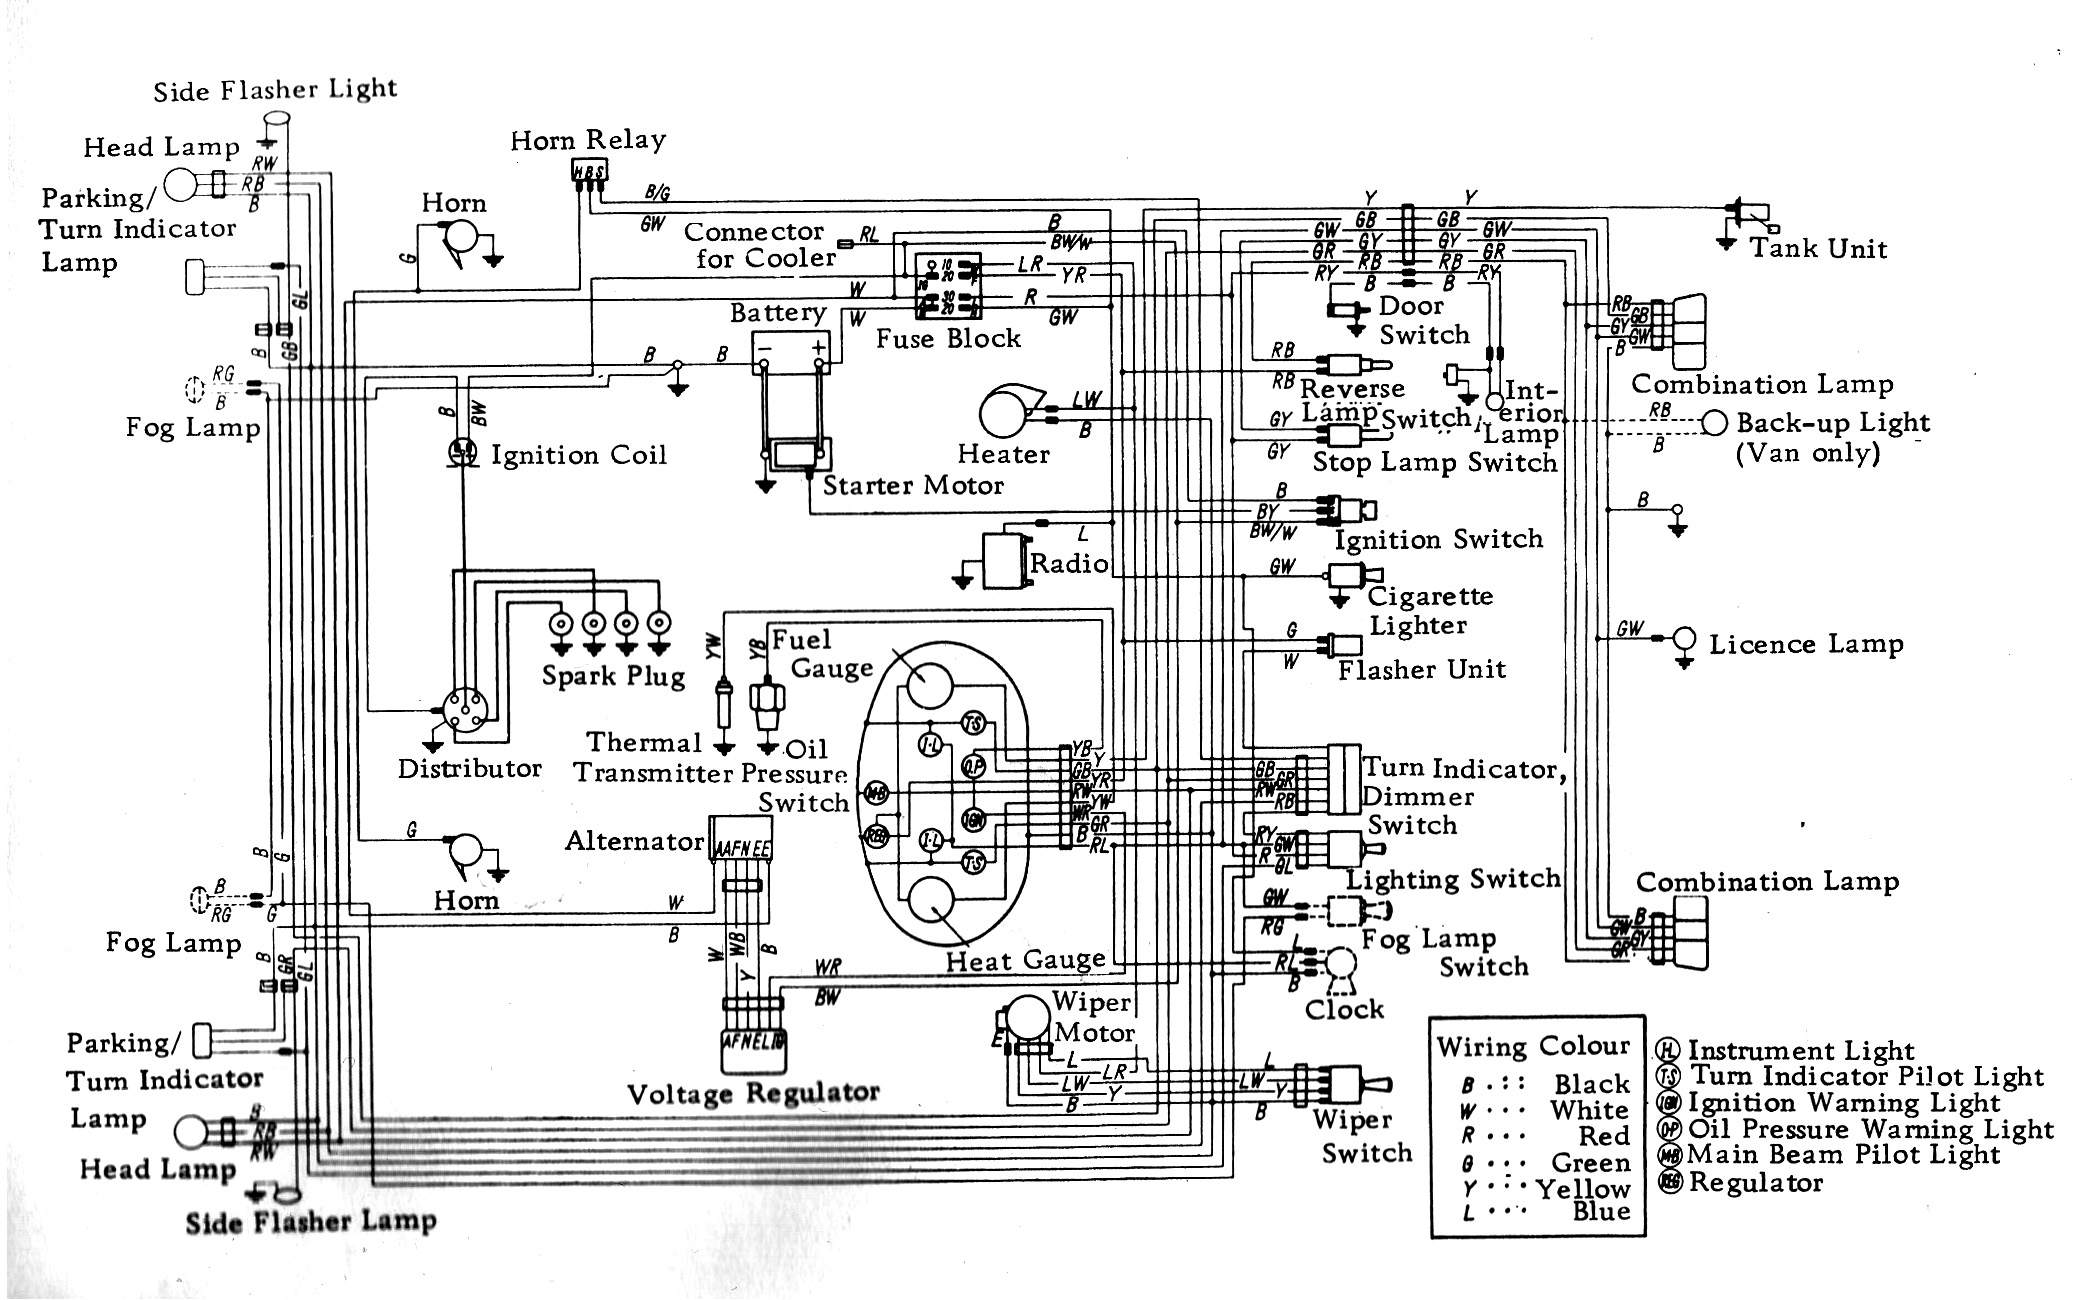 WiringDiagramVB10 downloads datsun 1000 datsun 720 wiring diagram at n-0.co